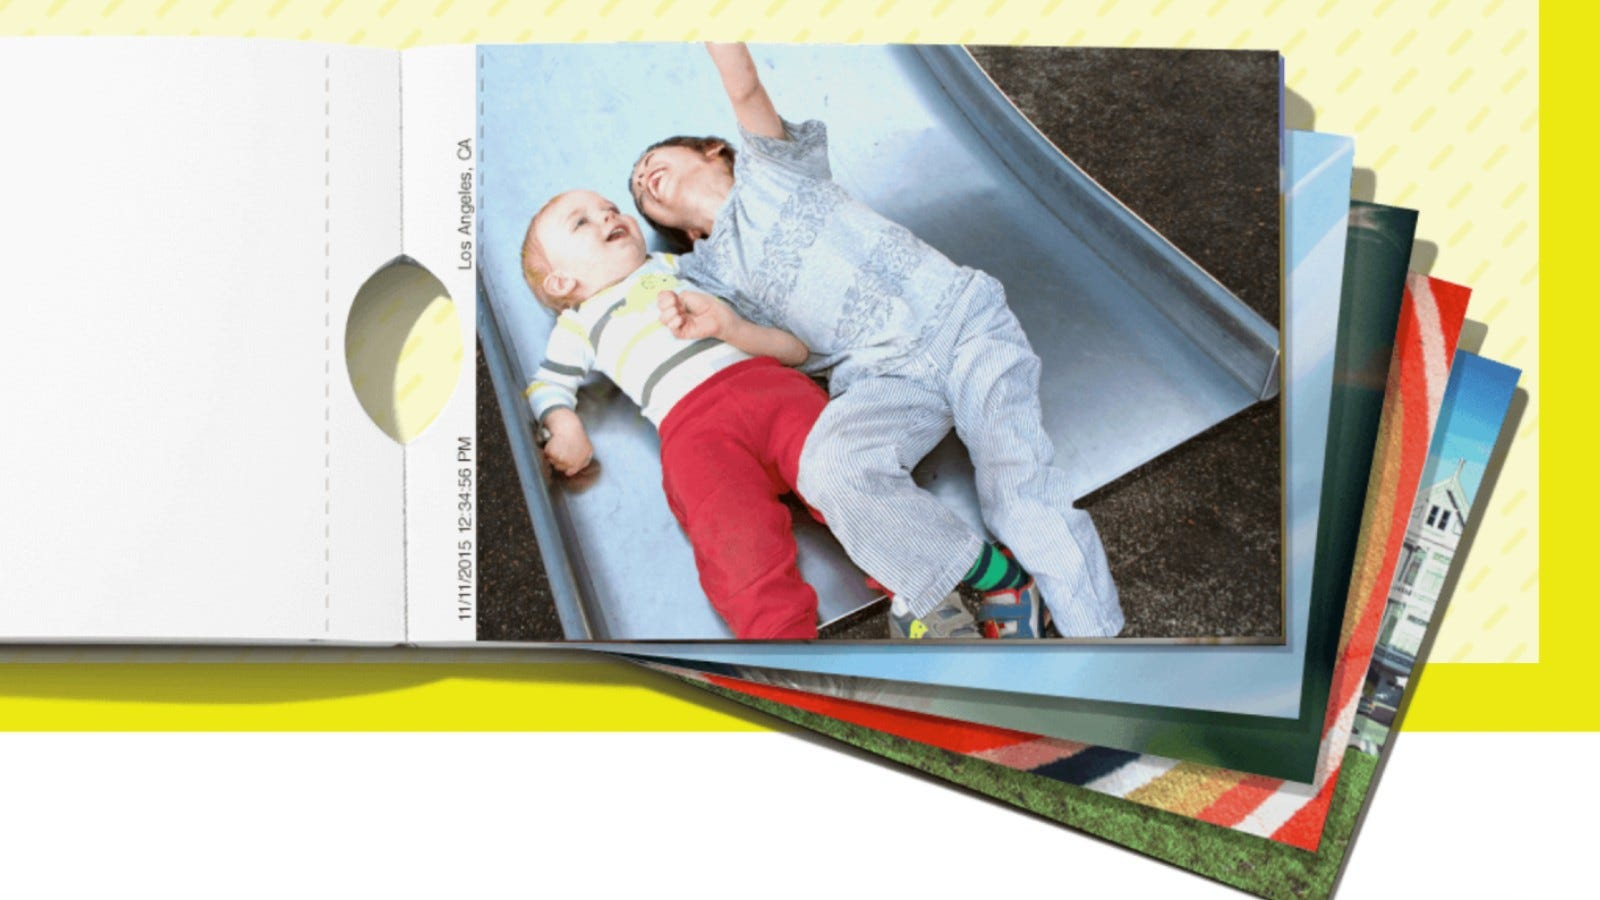 photobook featuring a photo of two kids laughing